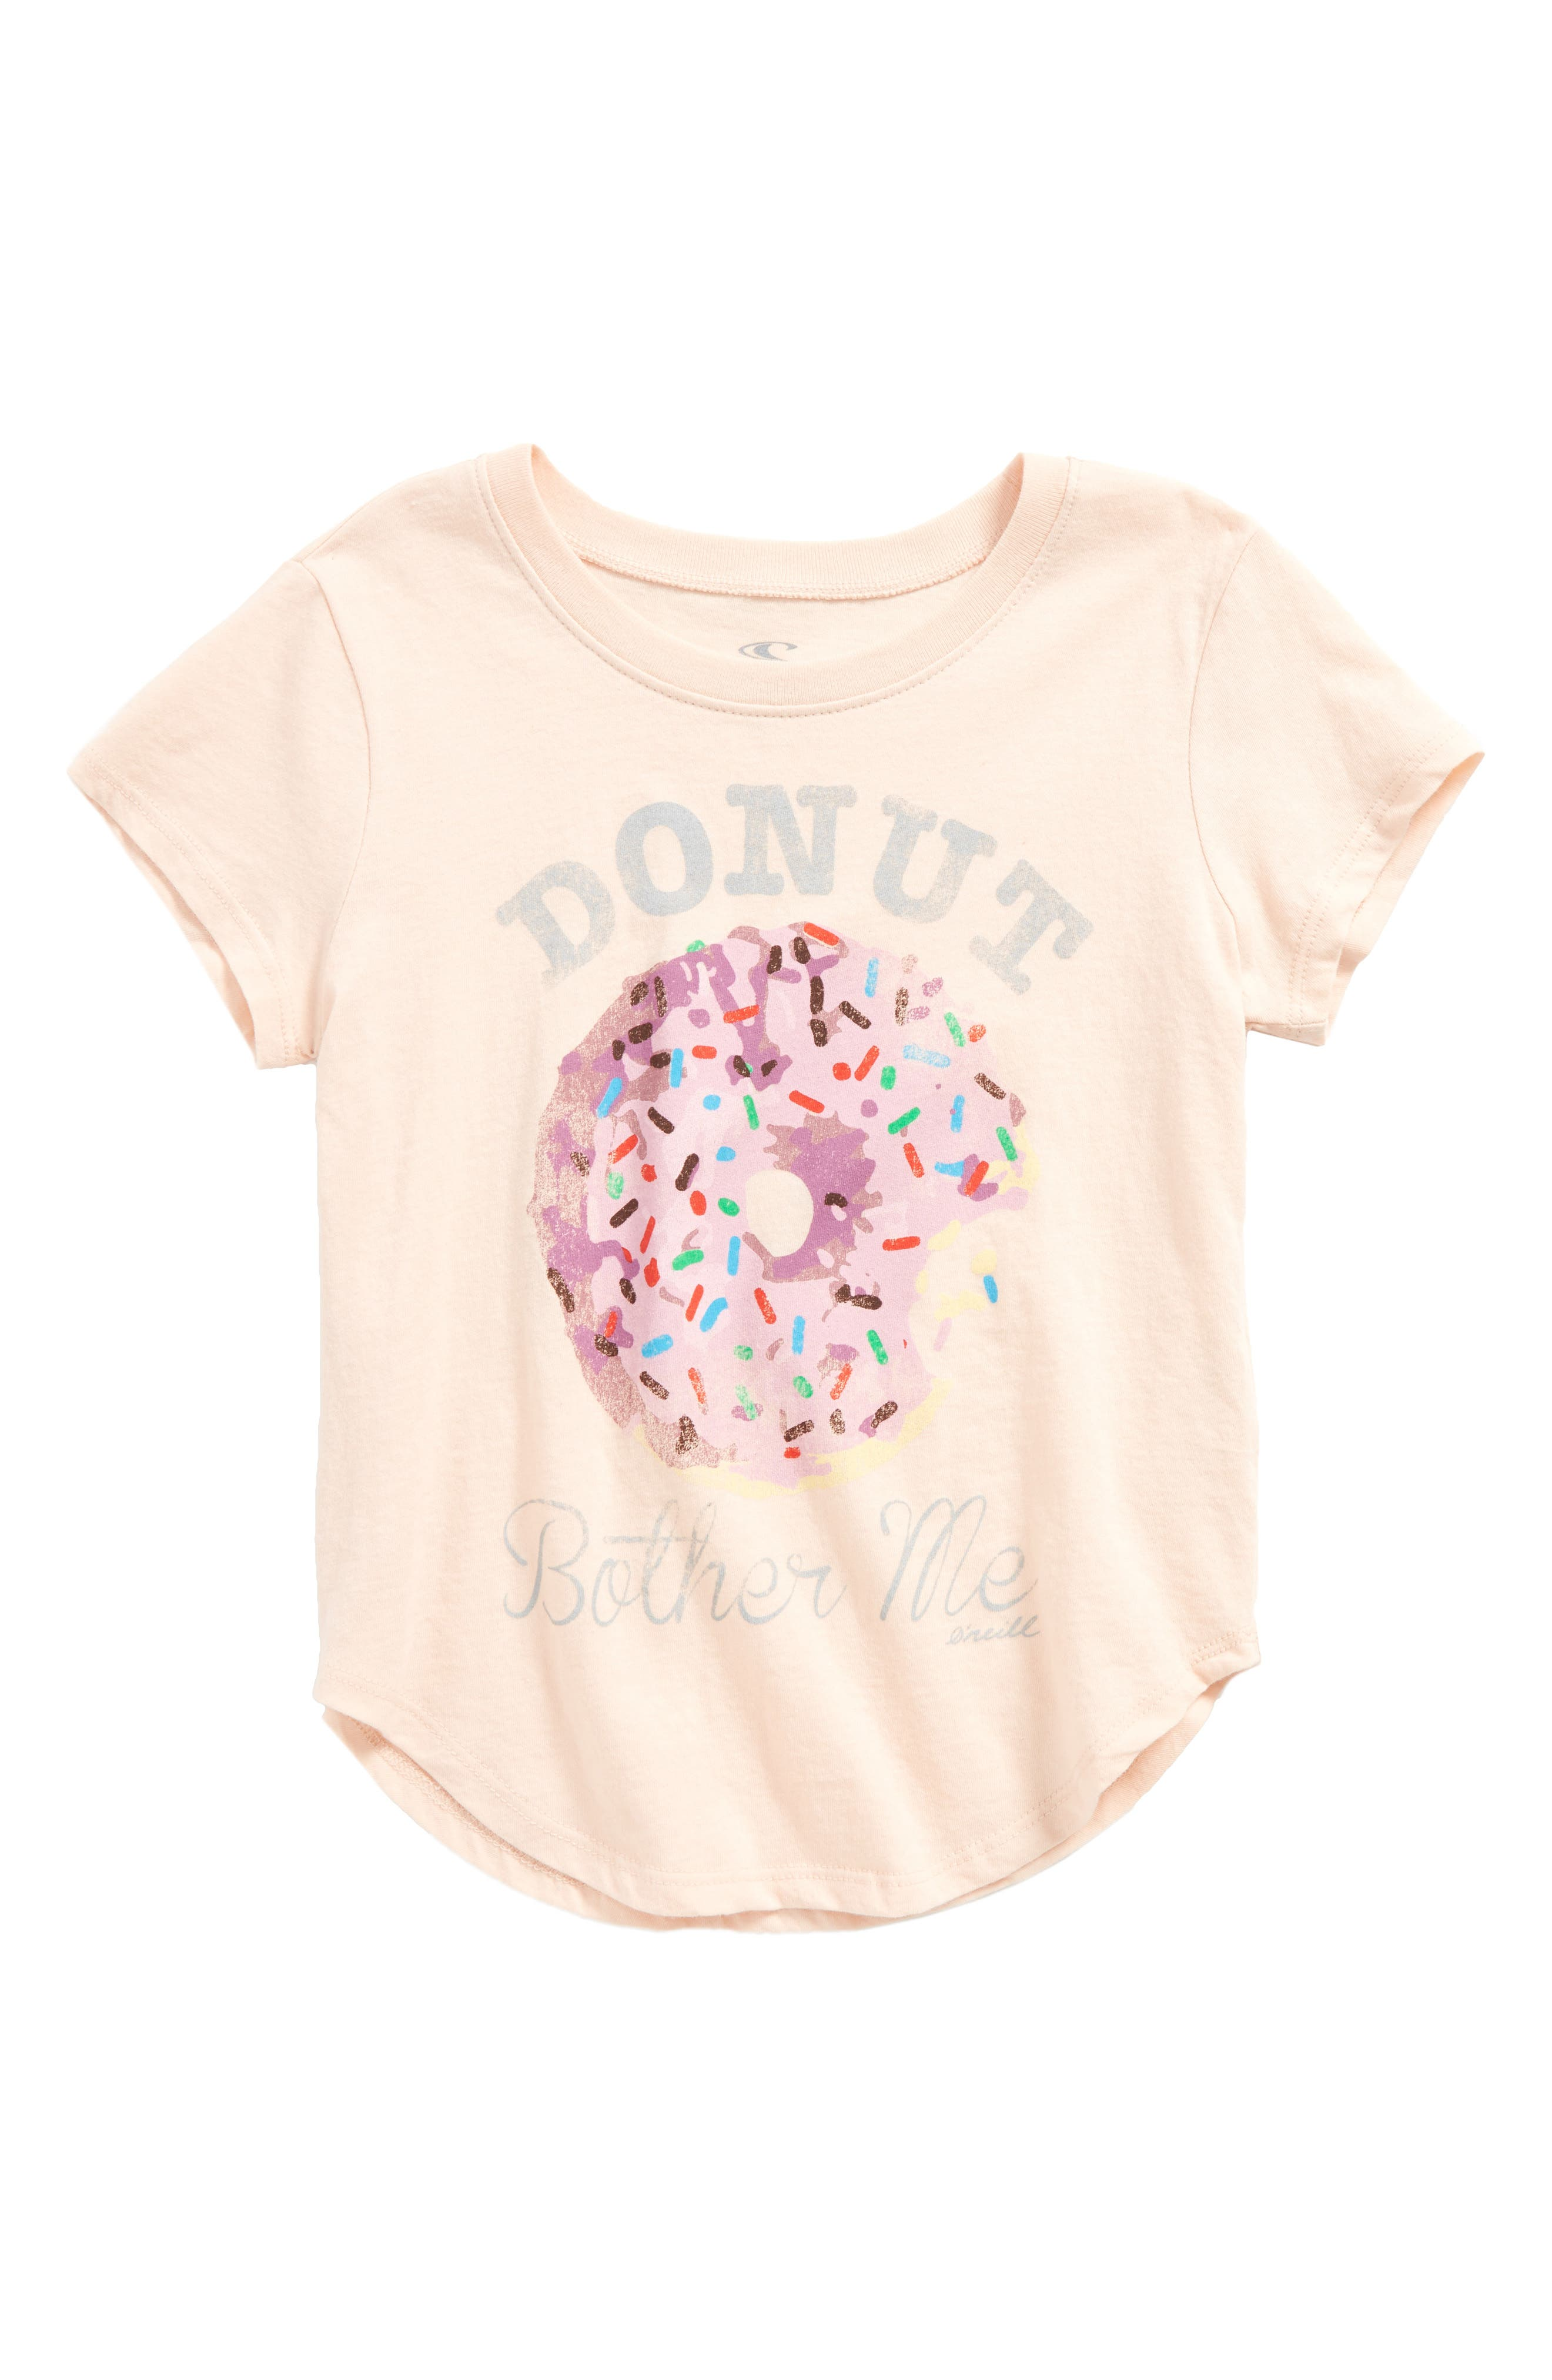 Donut Bother Me Graphic Tee,                         Main,                         color, Cameo Rose - Lly